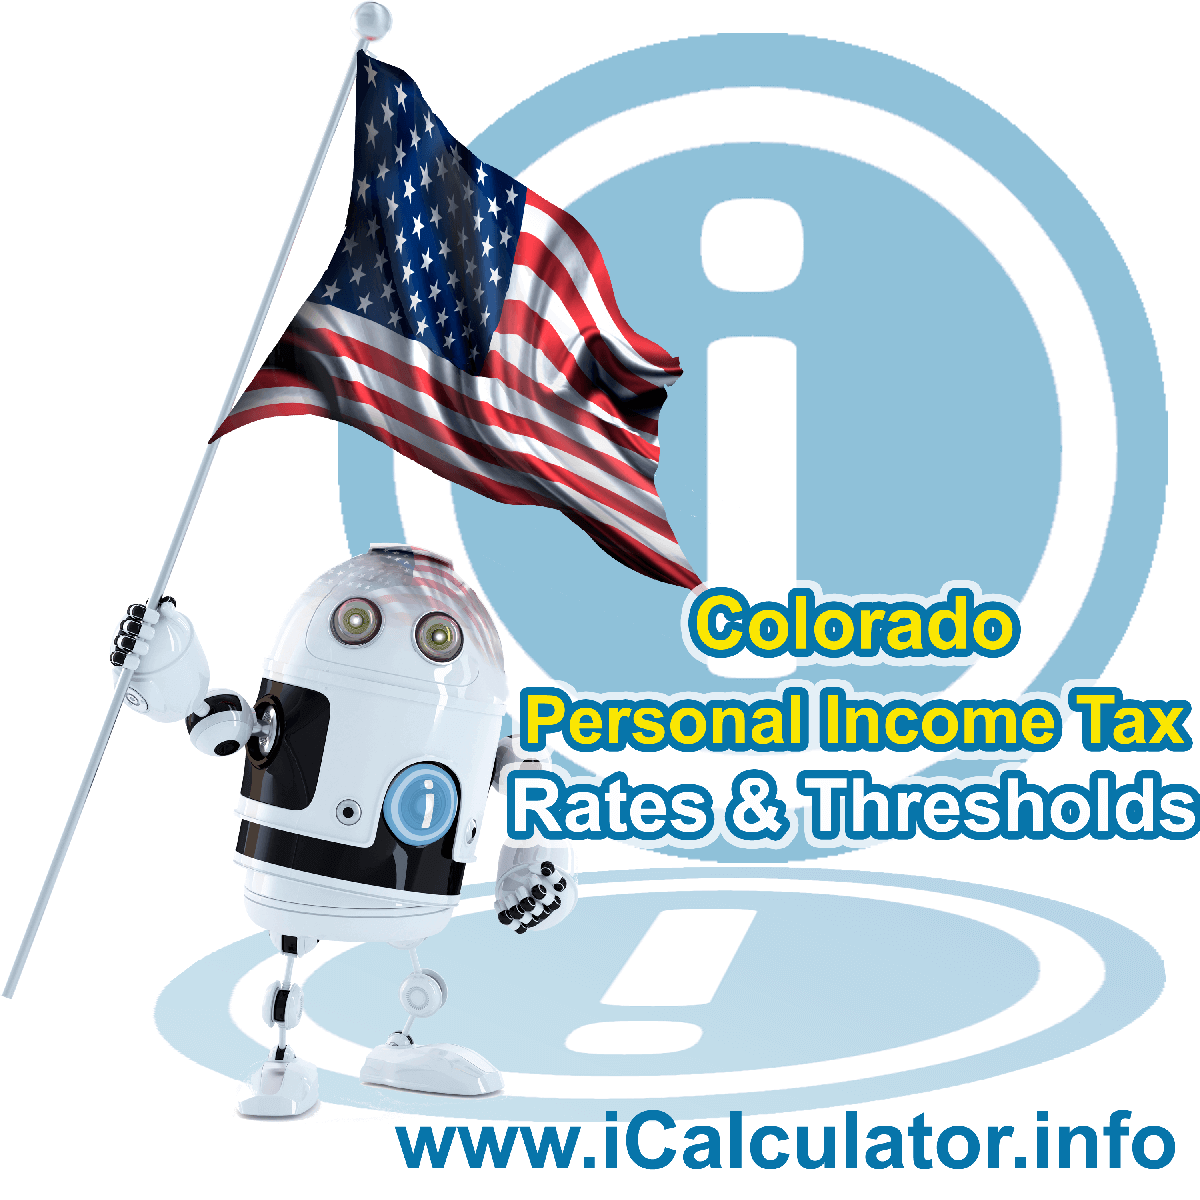 Colorado State Tax Tables 2020. This image displays details of the Colorado State Tax Tables for the 2020 tax return year which is provided in support of the 2020 US Tax Calculator